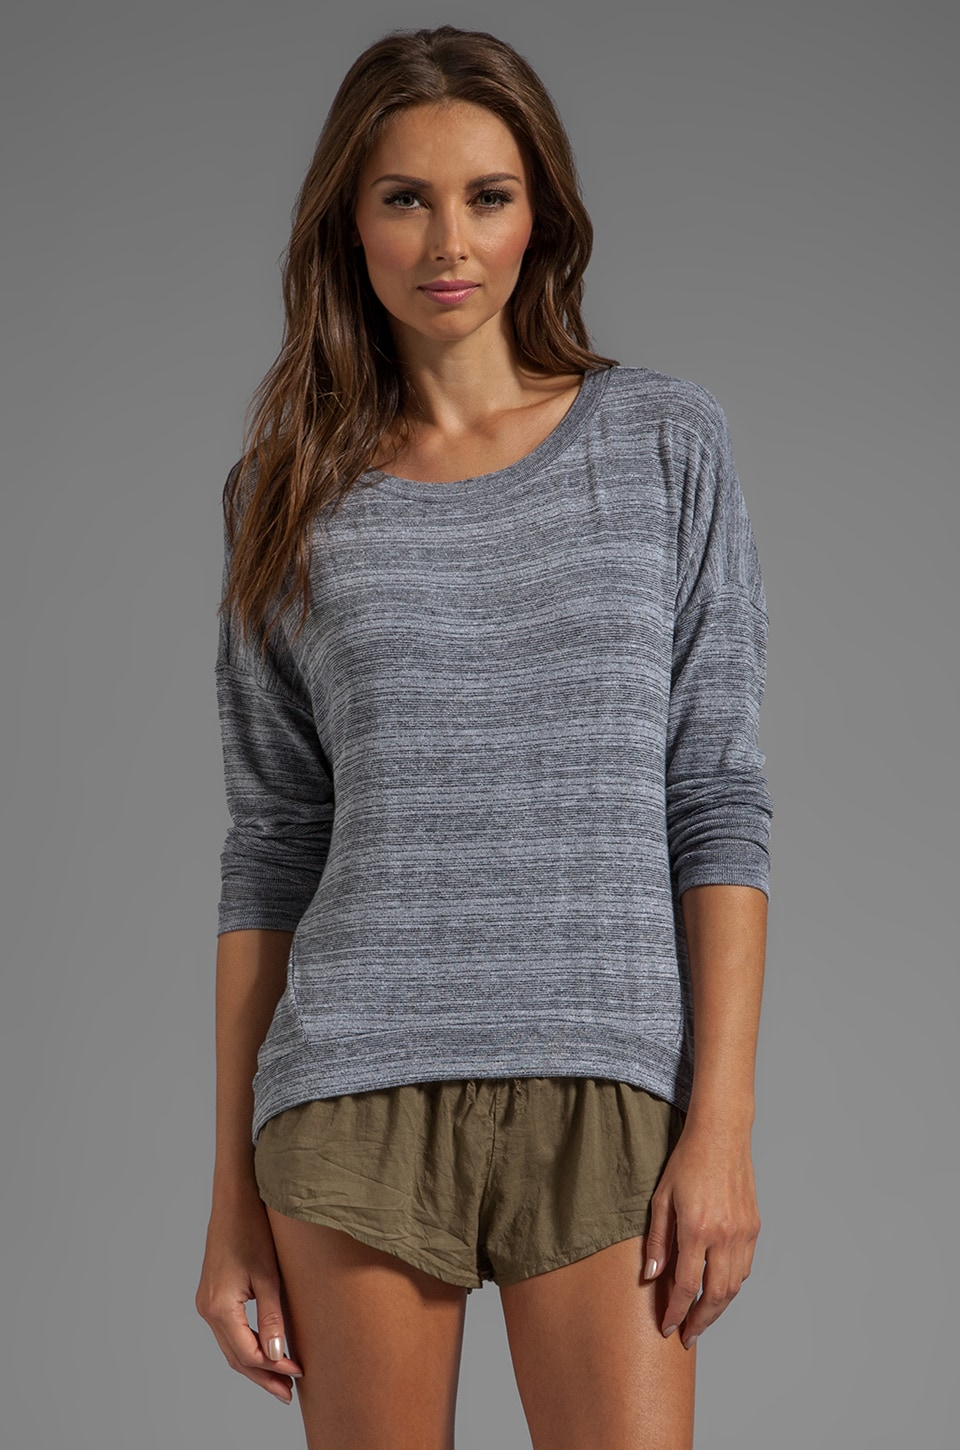 XiRENA Shelby Pullover in Cement